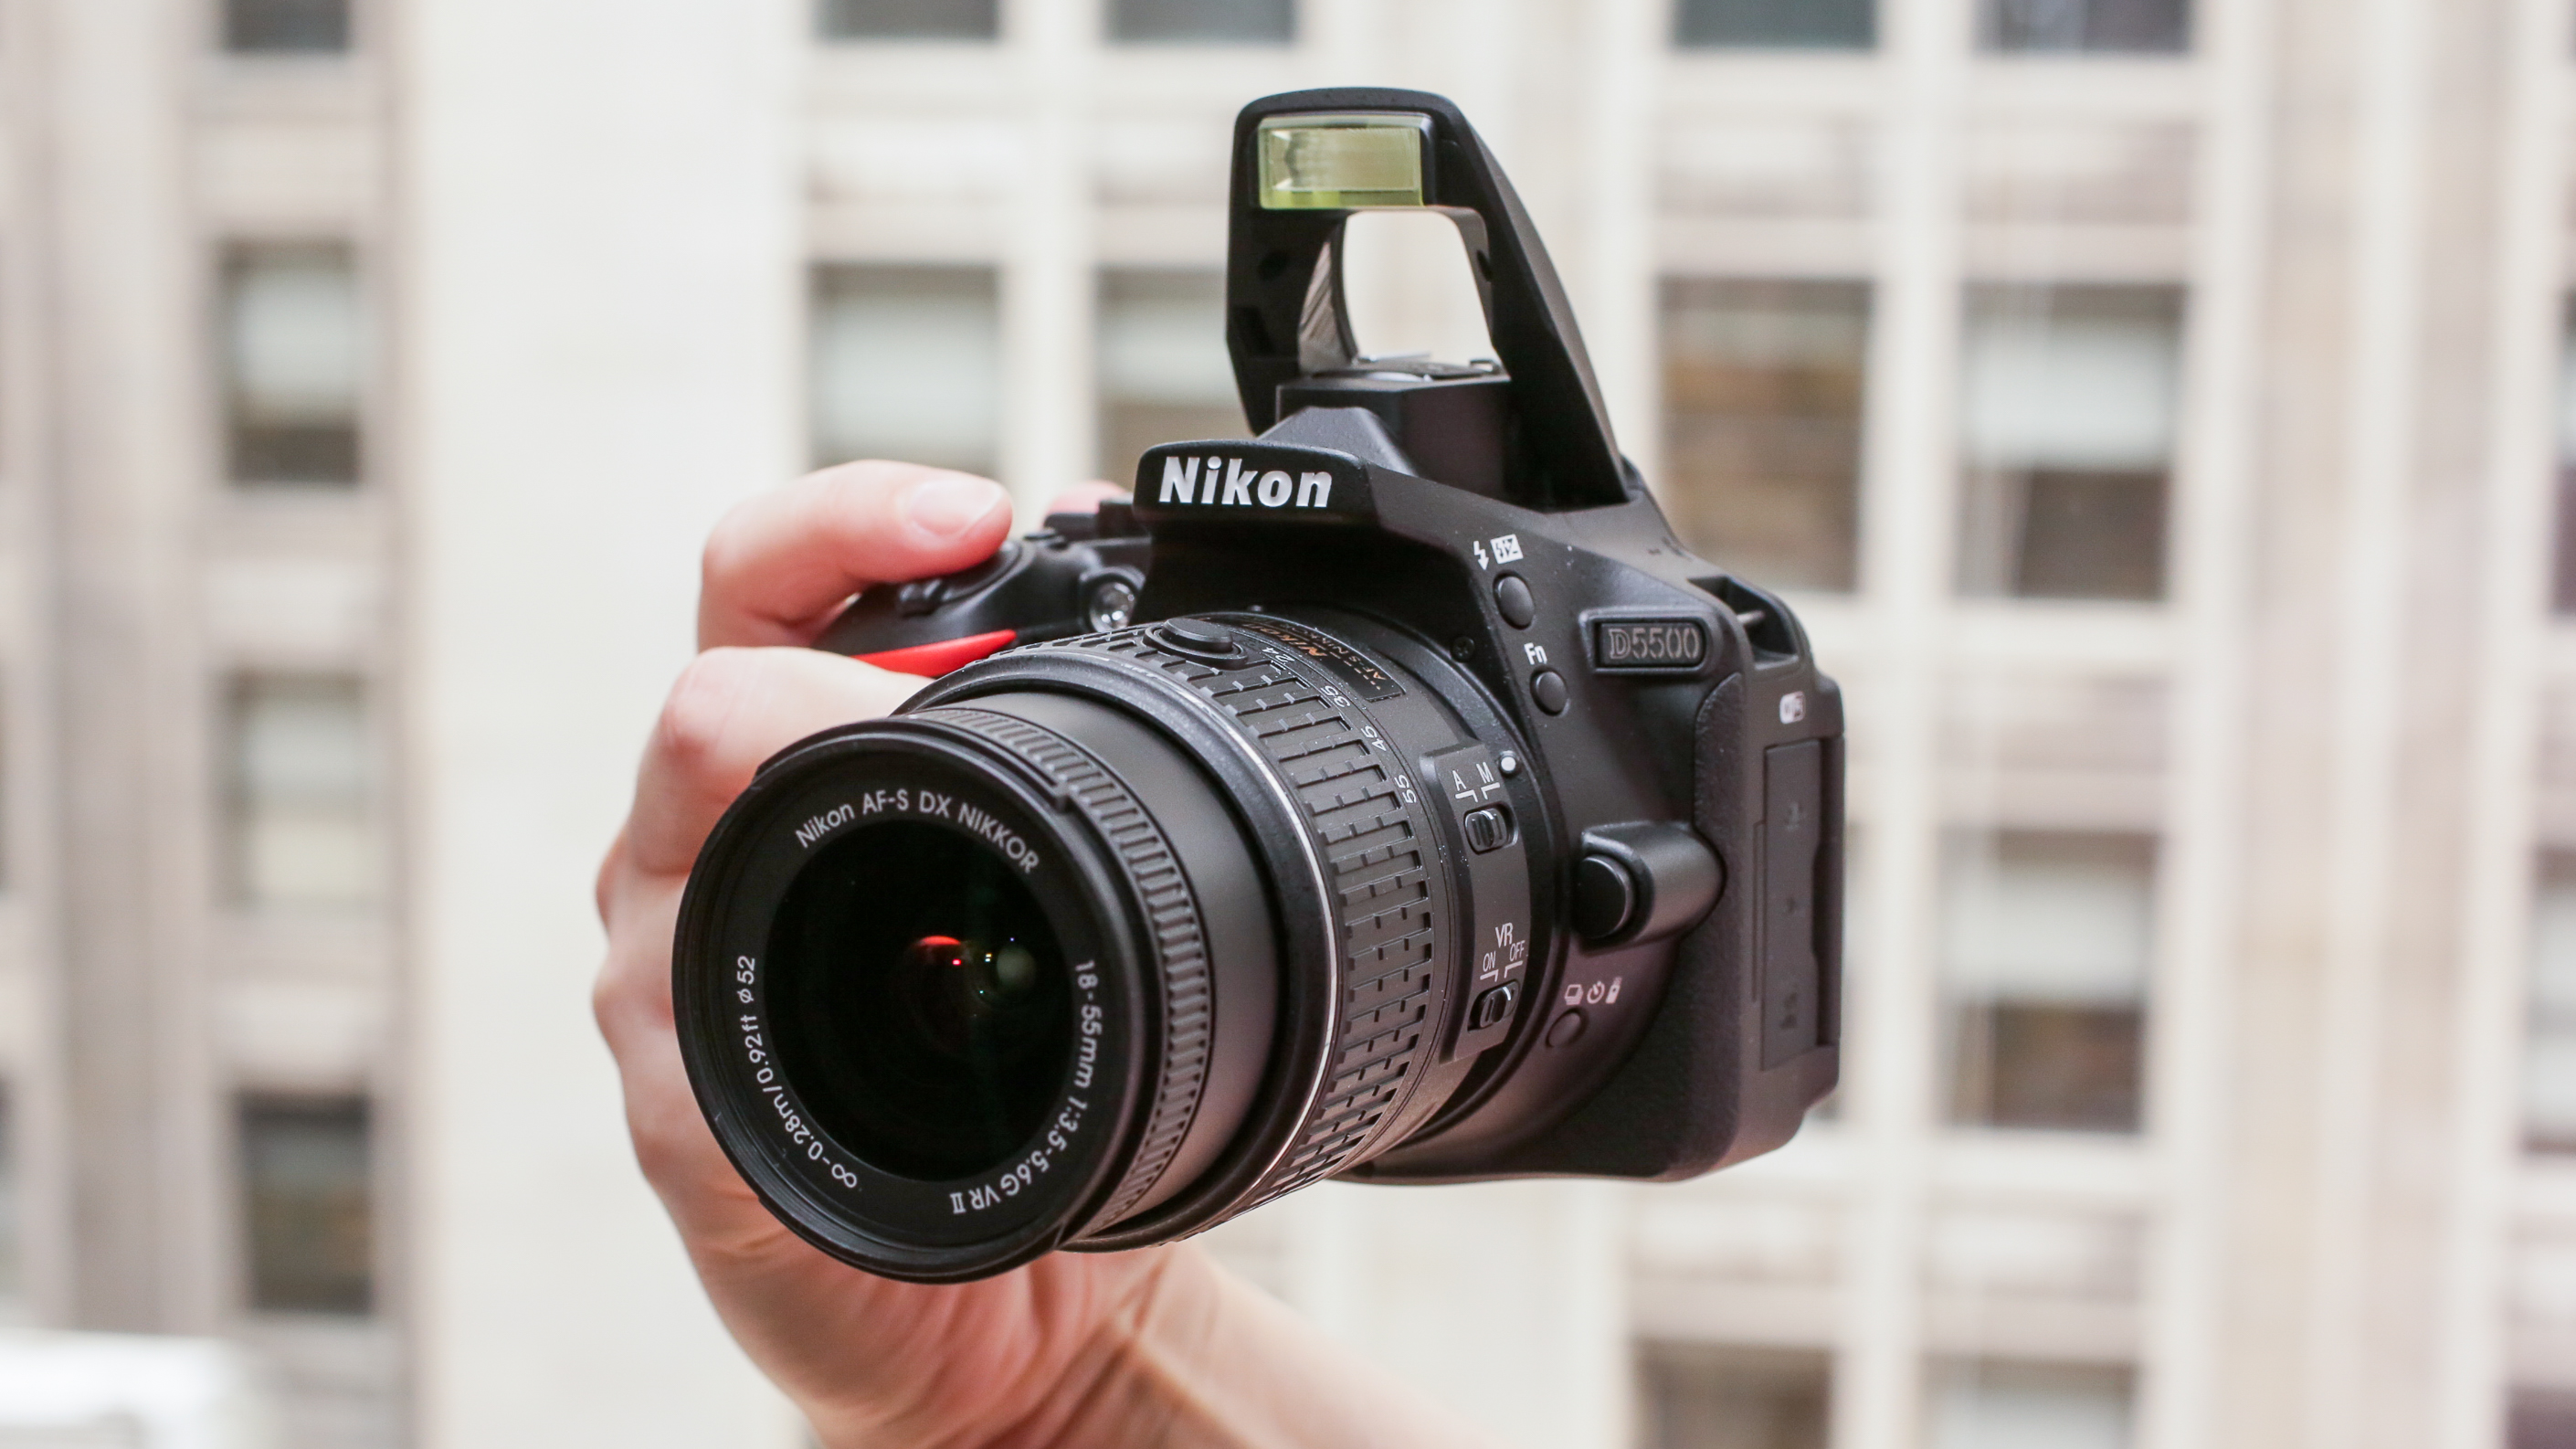 It's great, but grip the D5500 before you get it